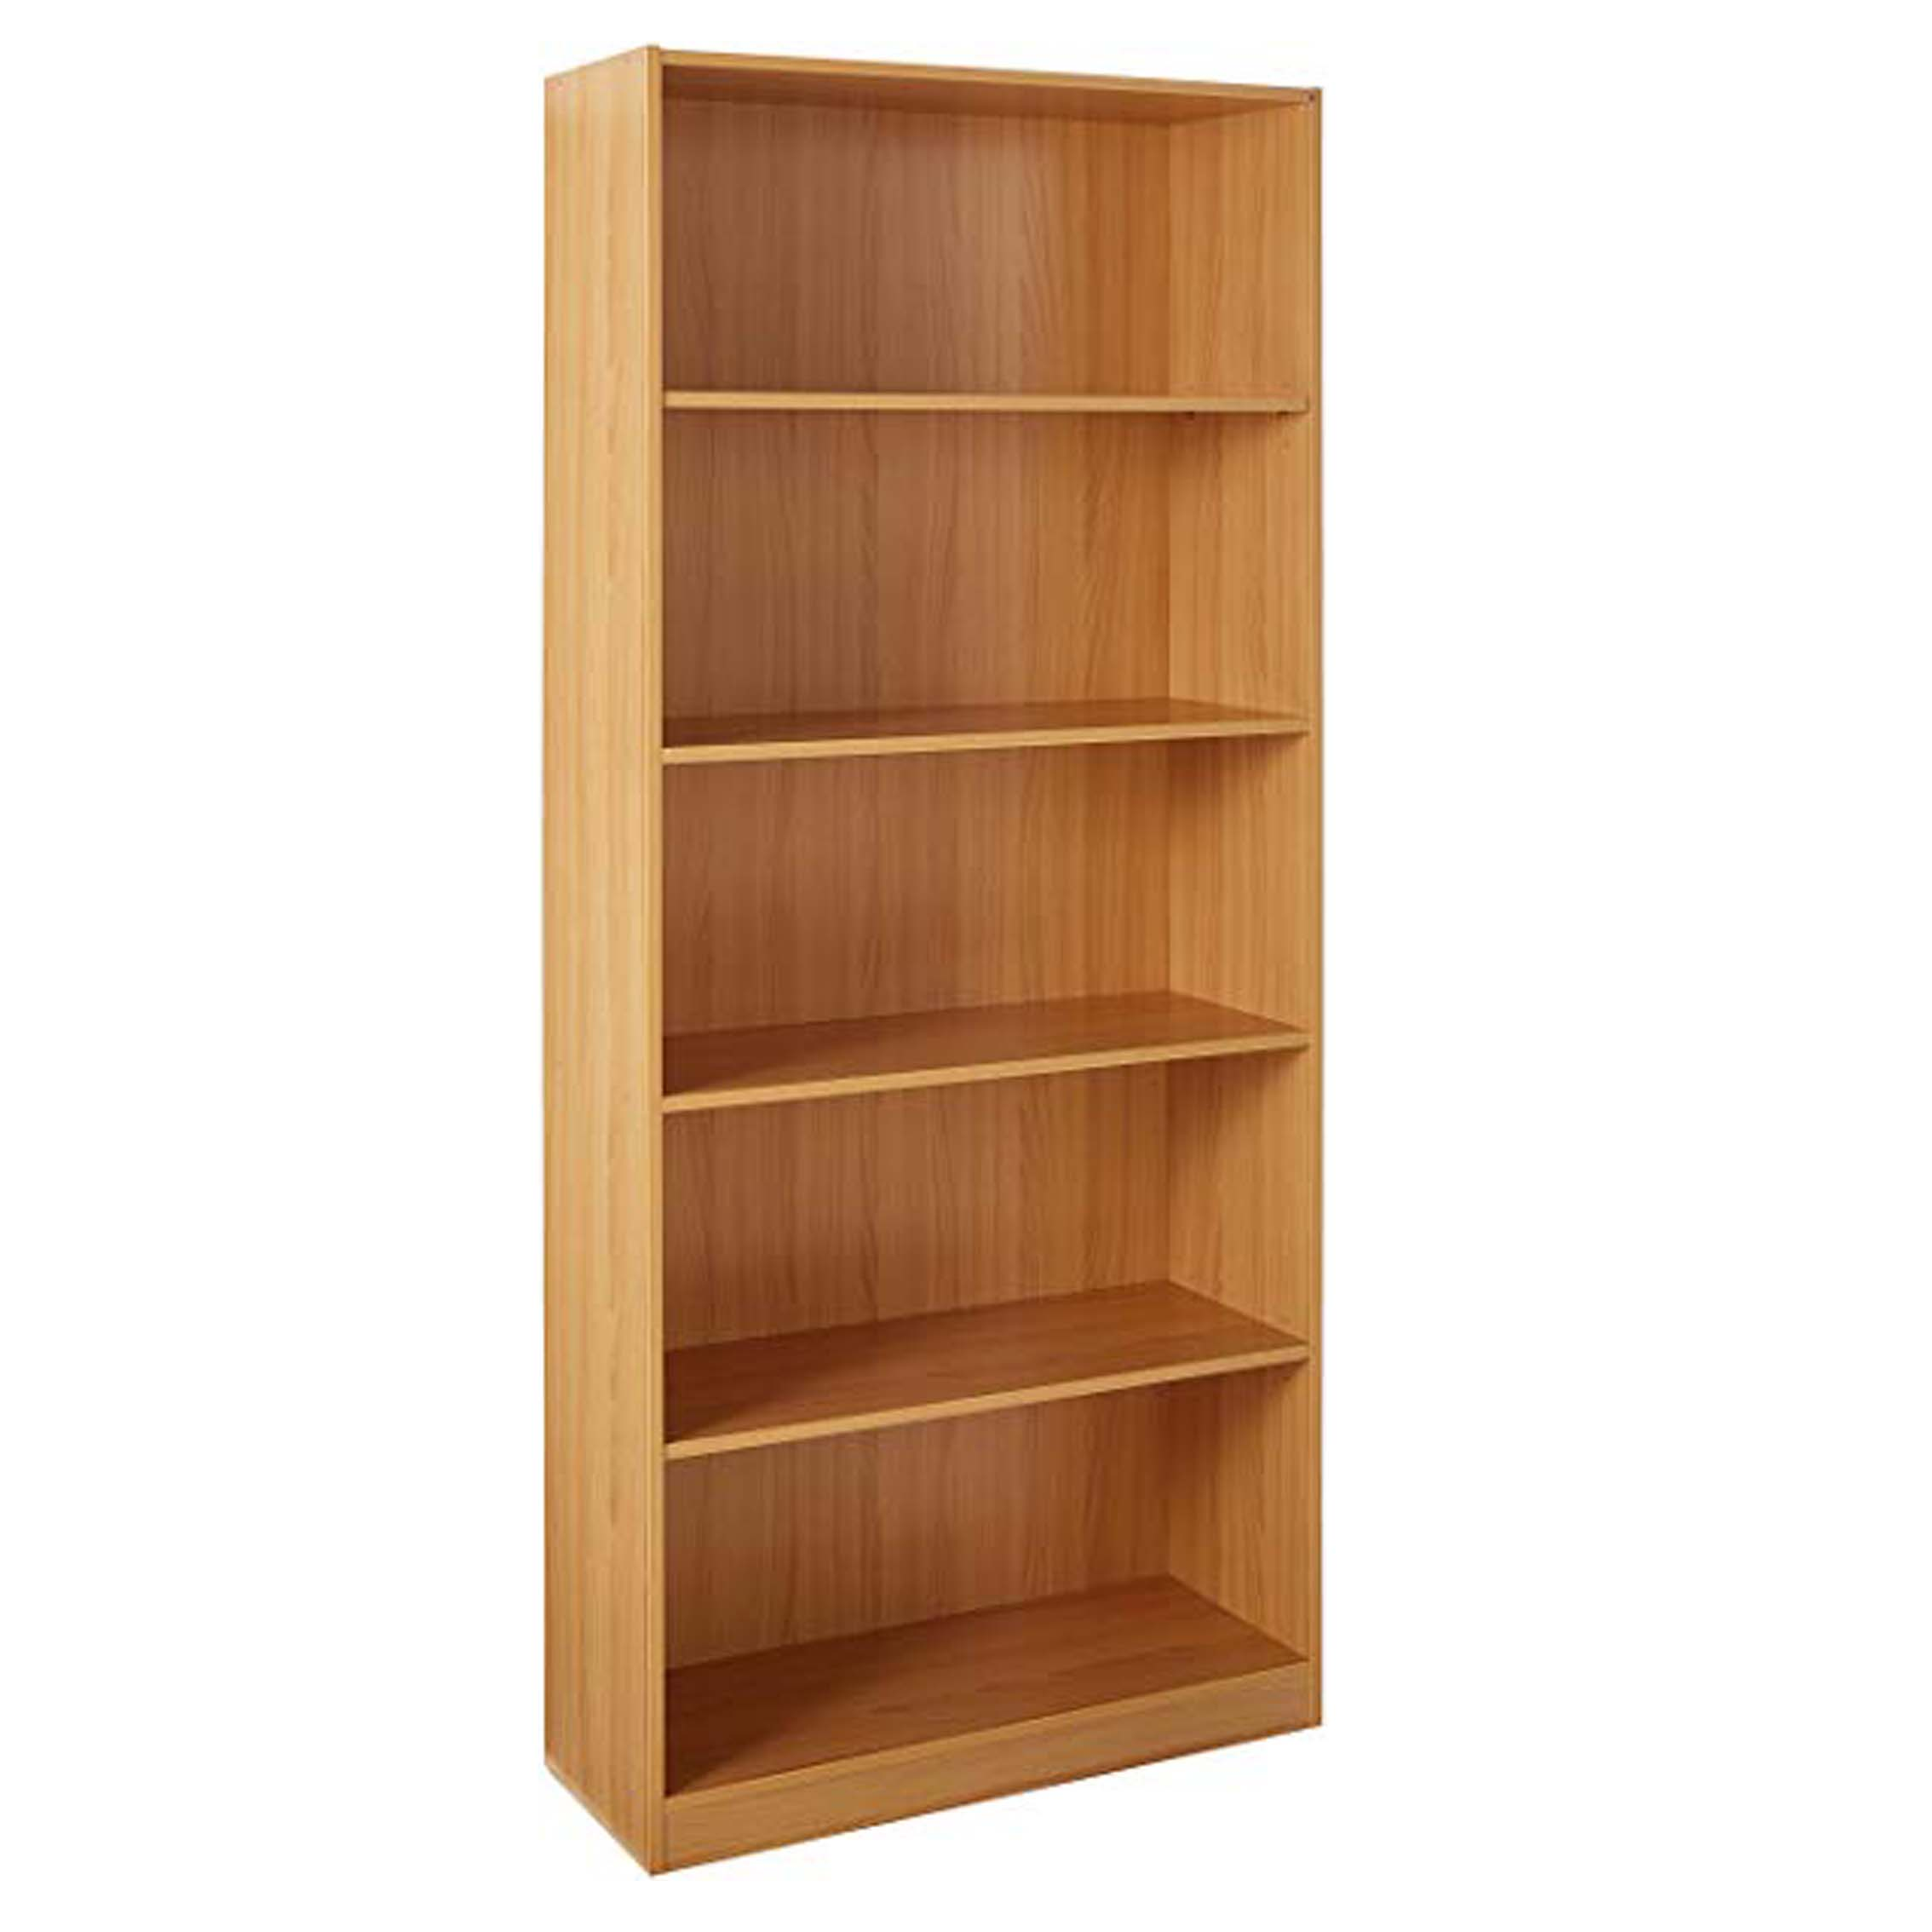 Cheap Factory Modern Wooden MFC MDF Customized High Quality Storage Open 5 tier shelf Bookcase for Office Home Living Room